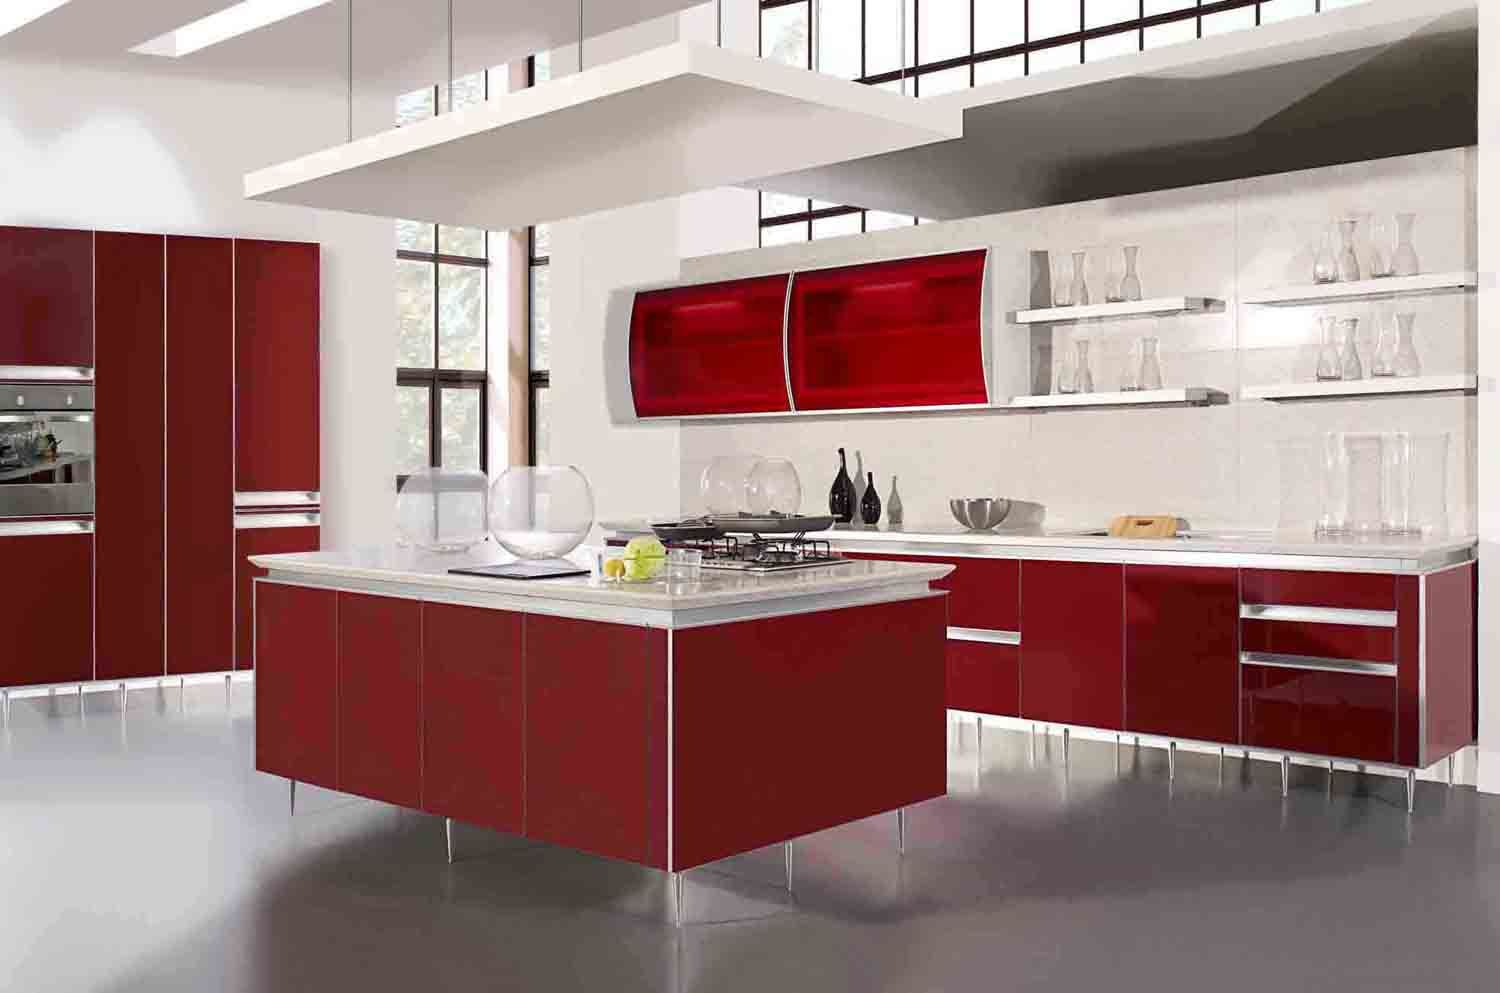 Brilliant Modern Kitchen Design Ideas 1500 x 993 · 76 kB · jpeg